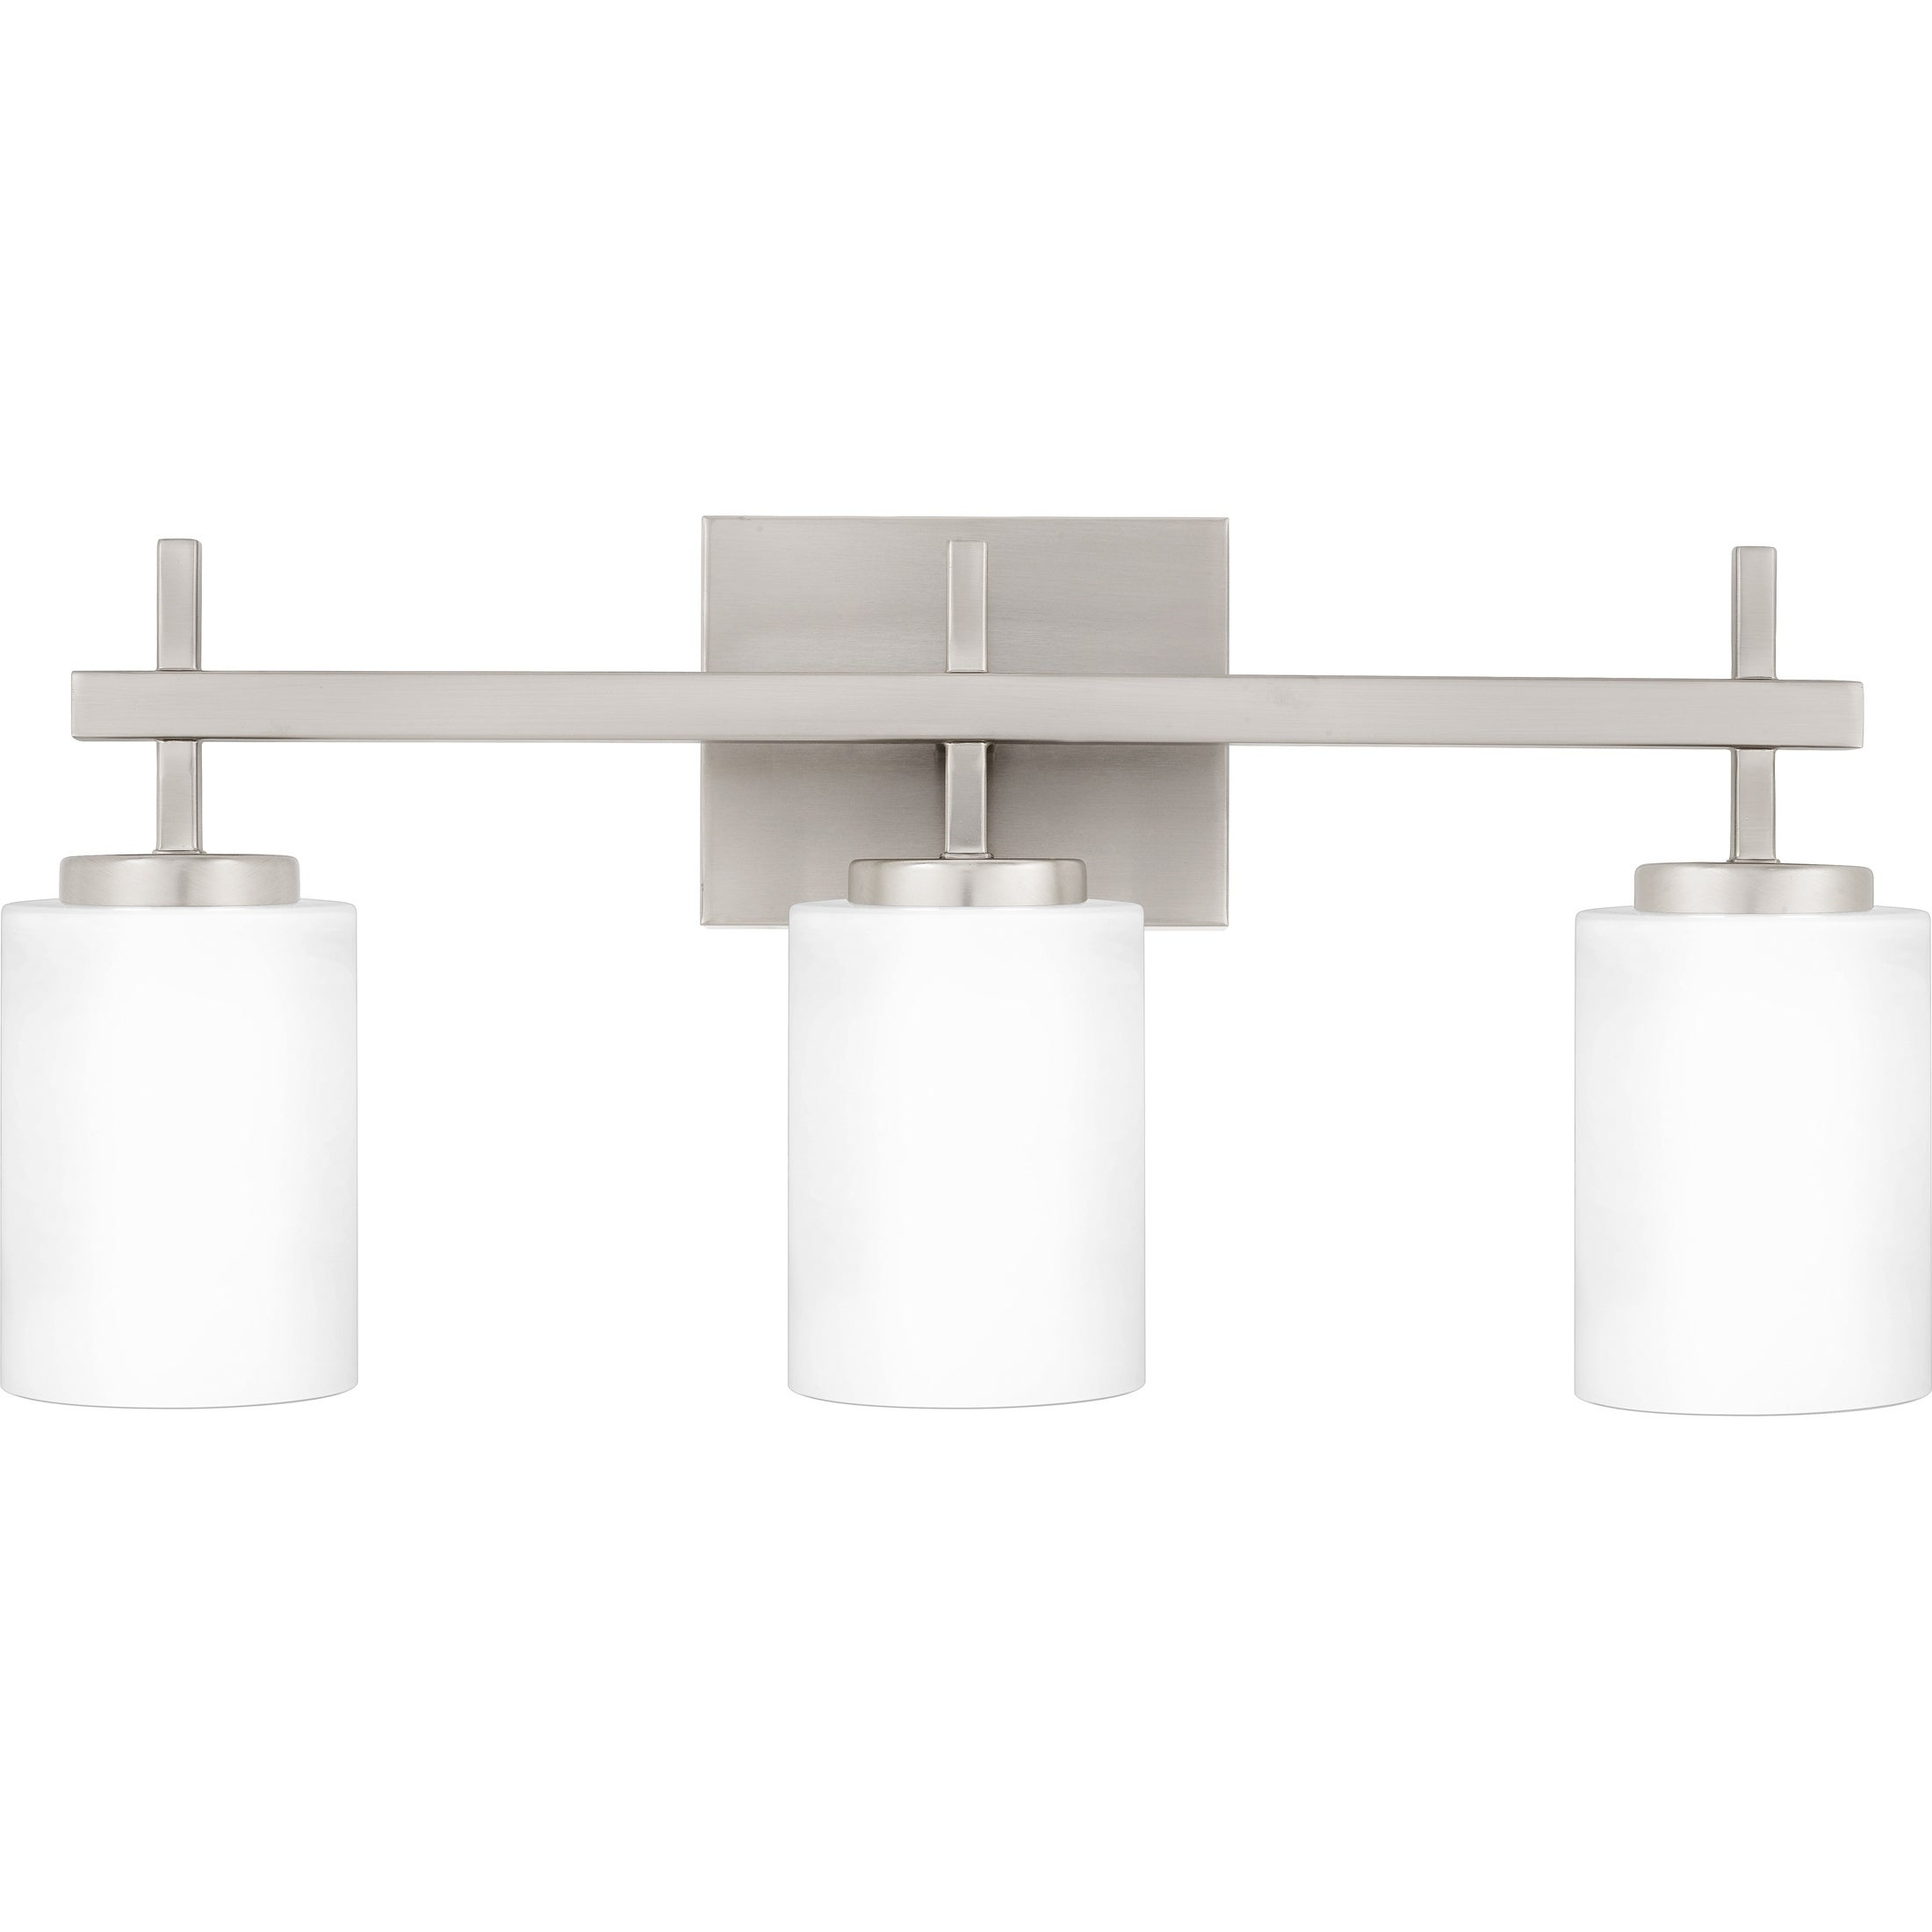 lightin lighting collection zm chrome platinum product quoizel wall wide bath polished vanity light led bracer